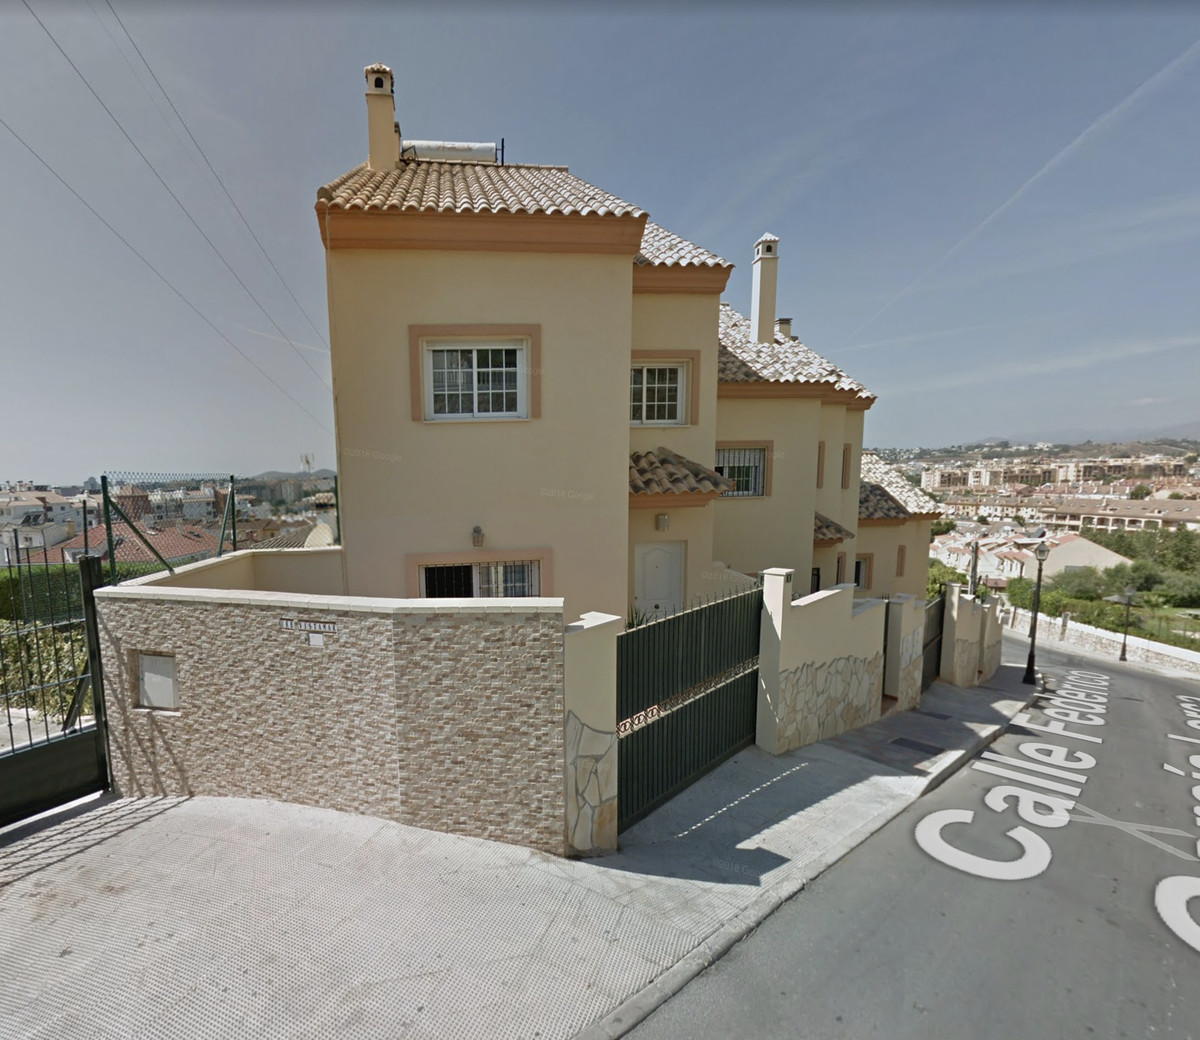 Beautiful townhouse in Los Pacos, Fuengirola built ln 3 floors and consisting out of entrance hall, , Spain